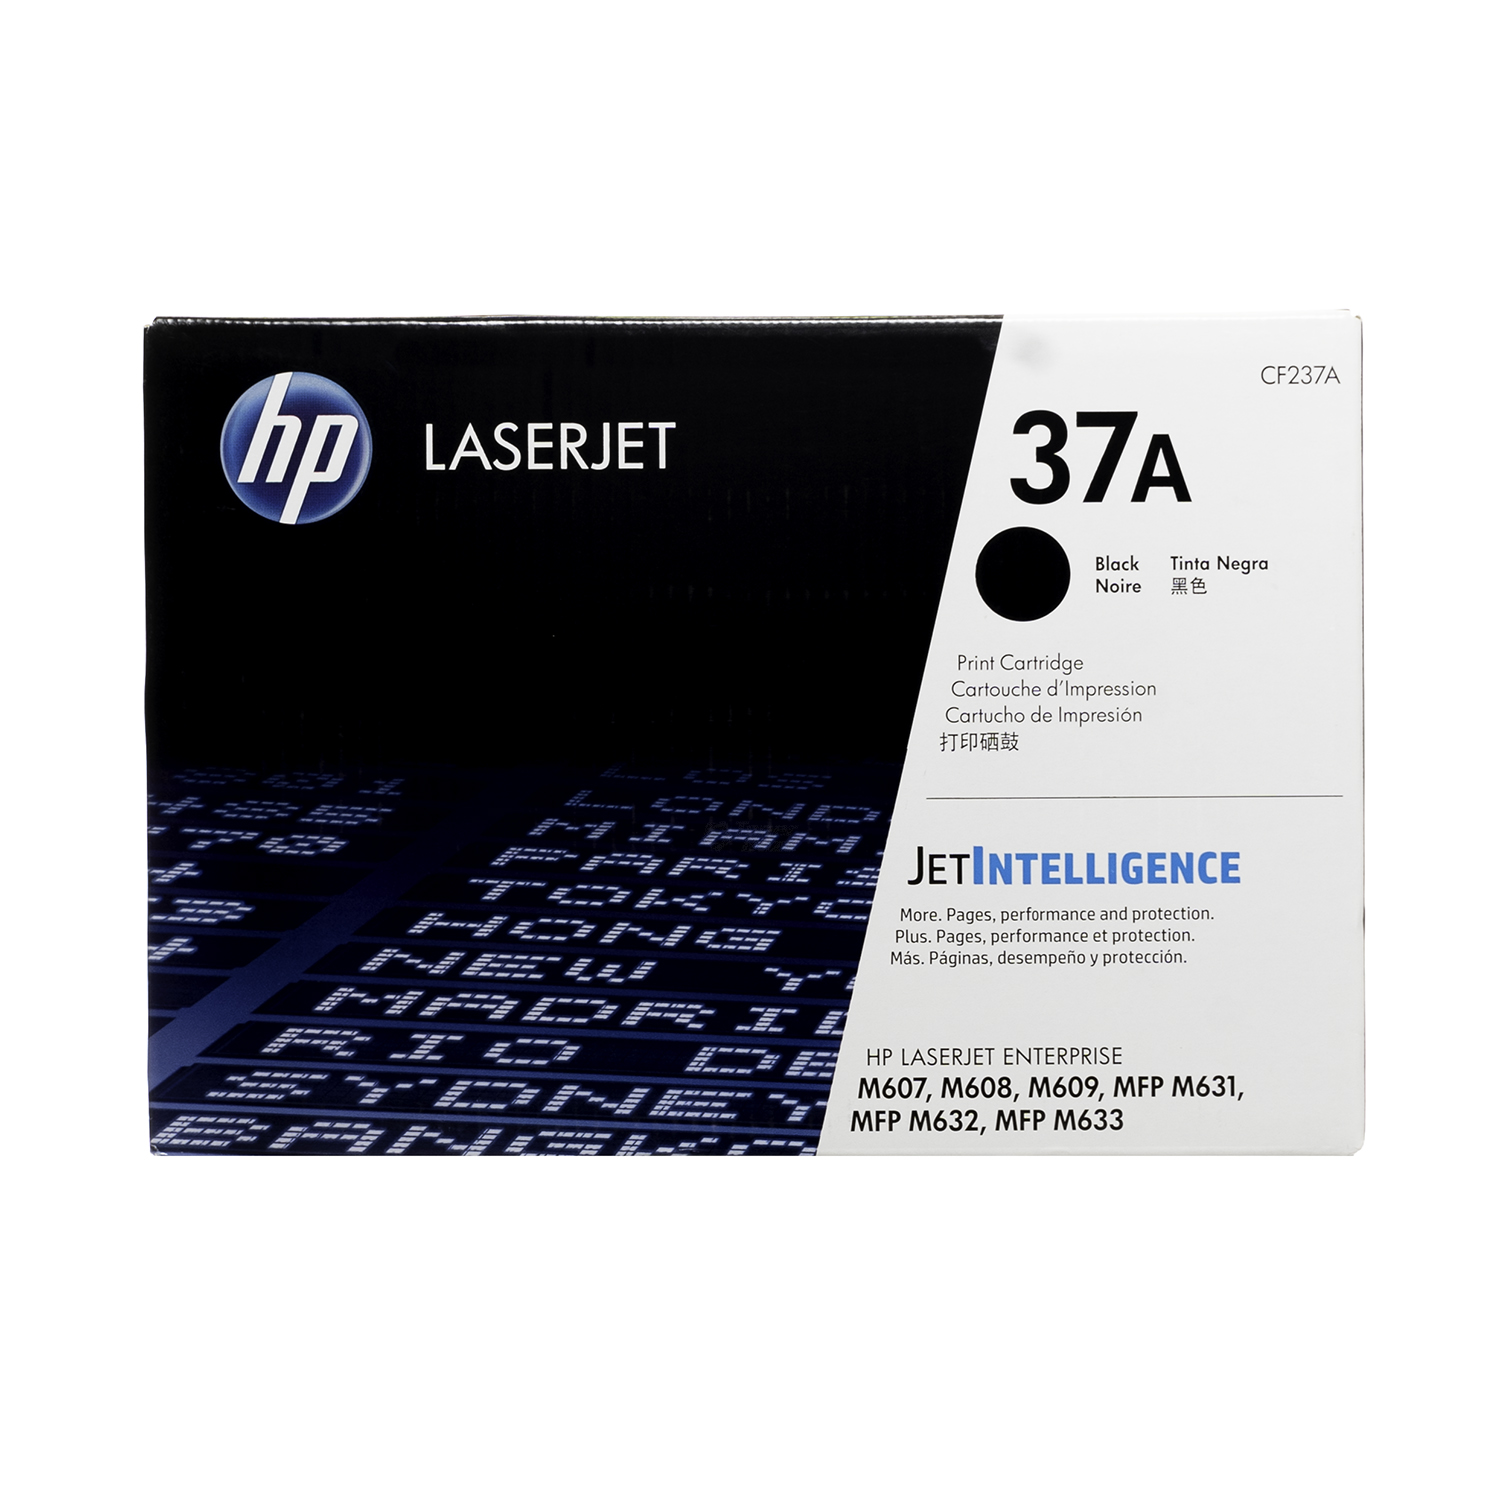 CF237A | HP 37A | Original HP LaserJet Toner Cartridge - Black